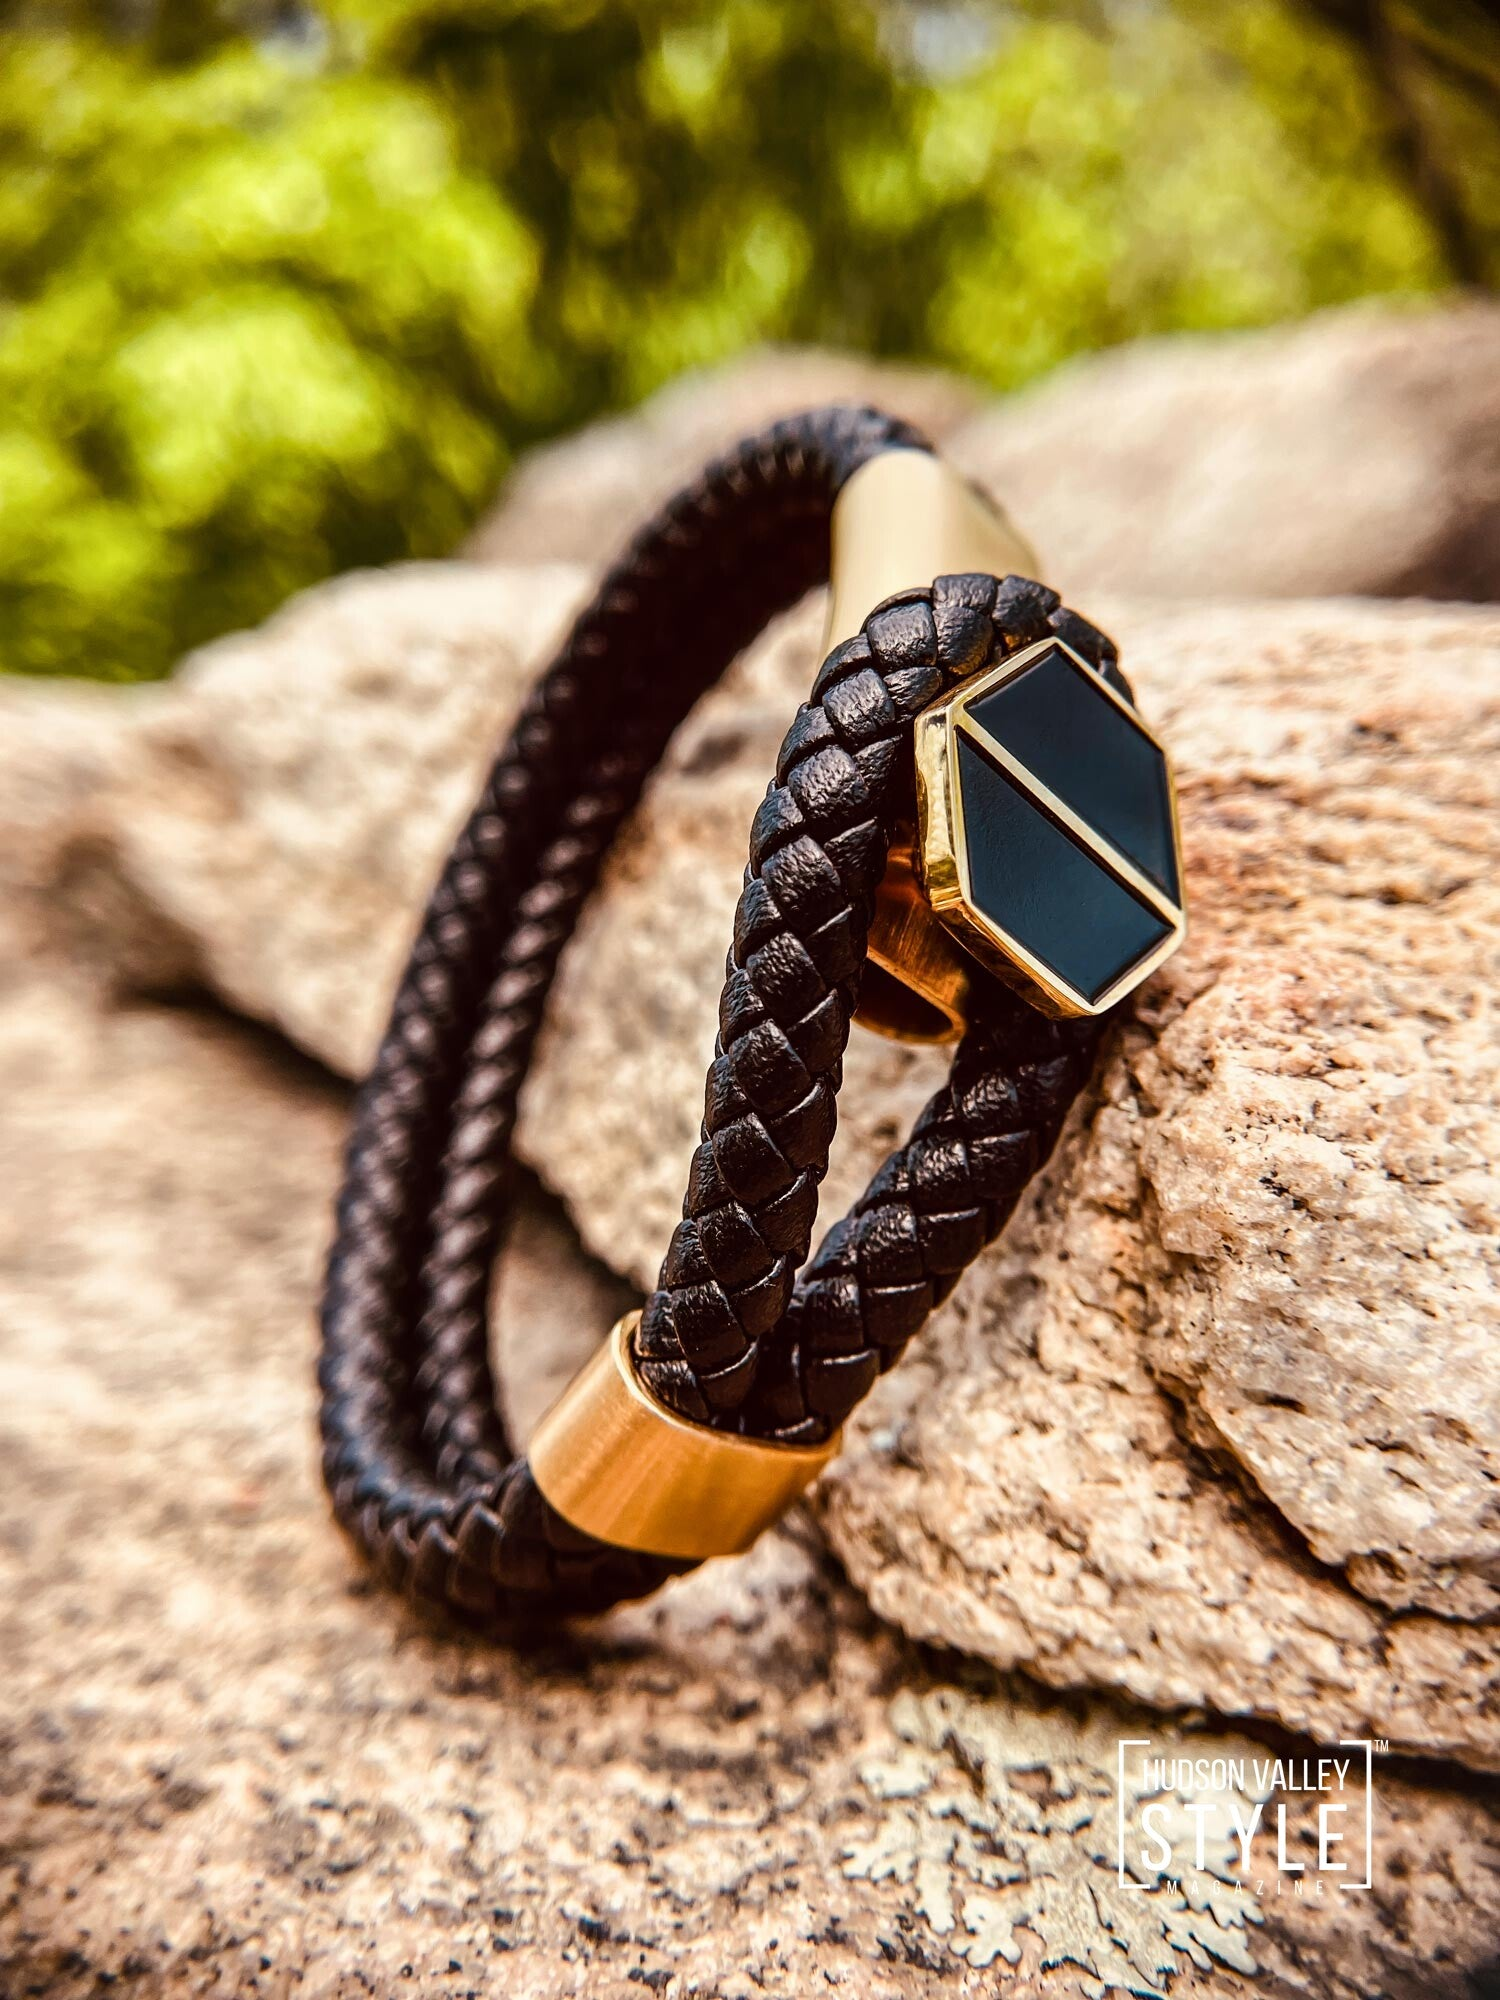 Black Leather and Gold Lasso Bracelet by HARD NEW YORK. This modern design features a woven black leather strap with brushed gold hexagon button closure. It will easily complement any casual or dressy styling. It is available at hardnewyork.com for $47 and free shipping.